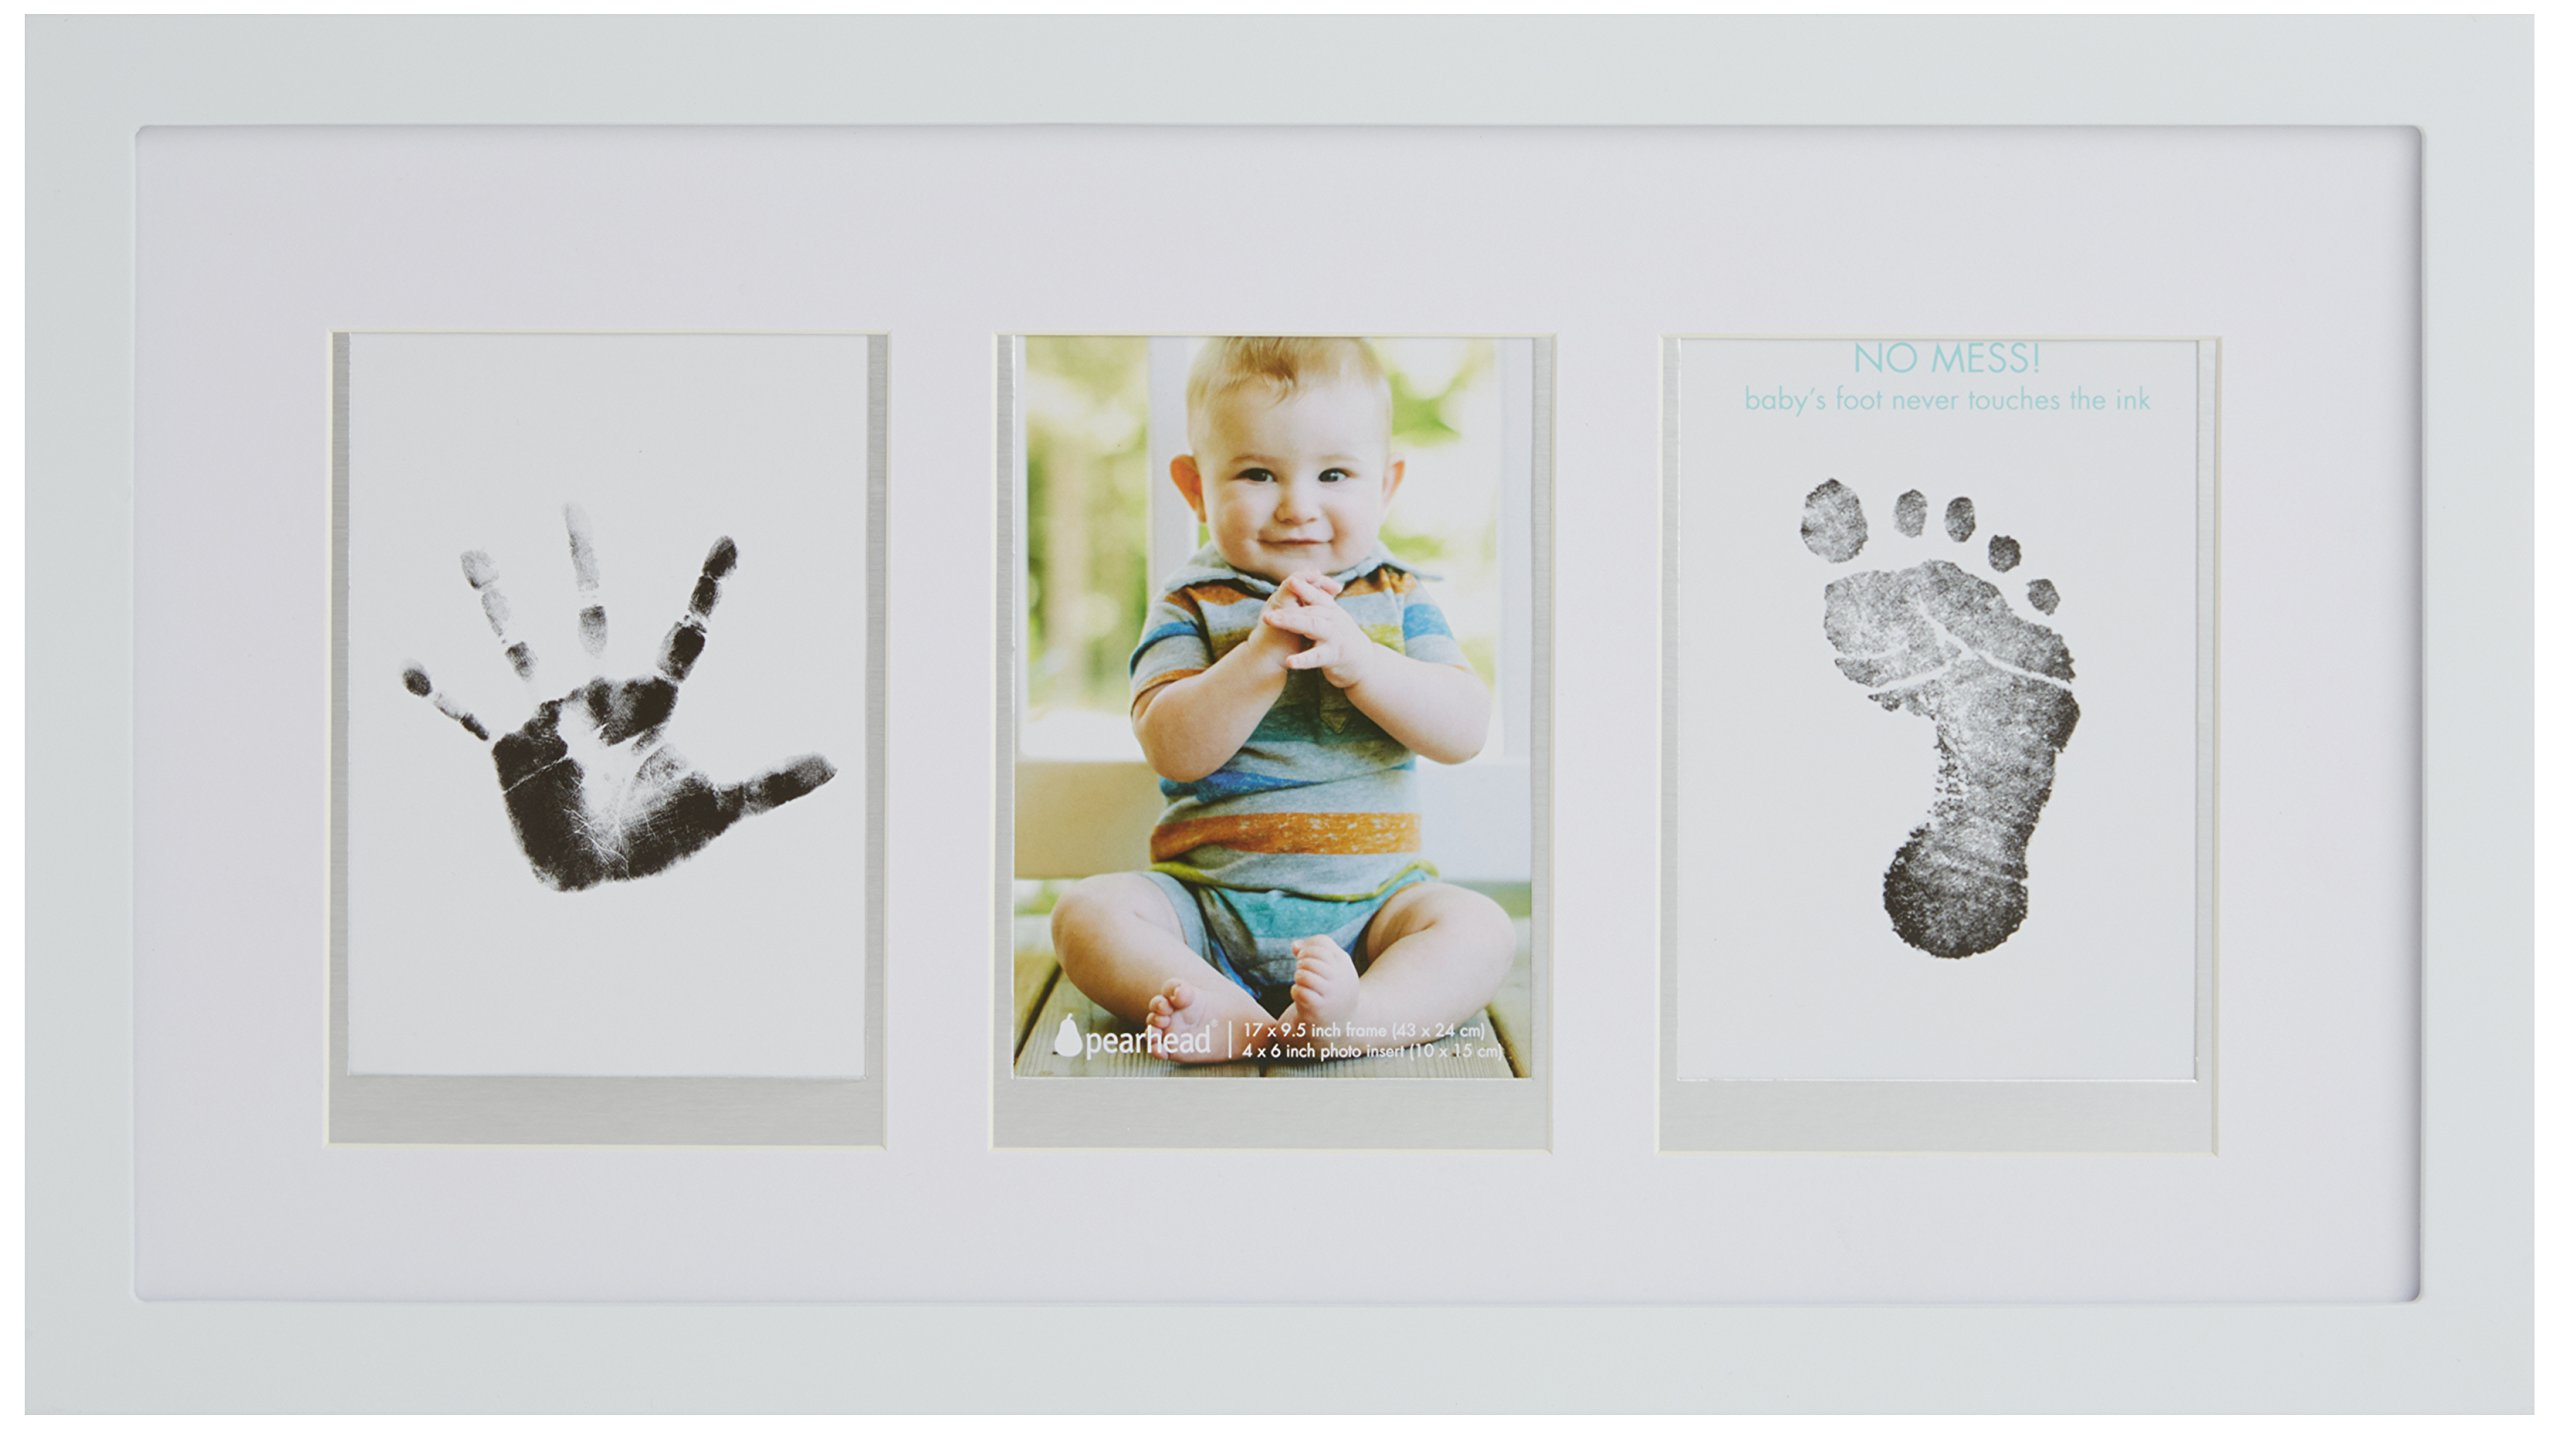 Pearhead Babyprints Newborn Baby Handprint and Footprint Desk Photo Frame & Impression Kit, White